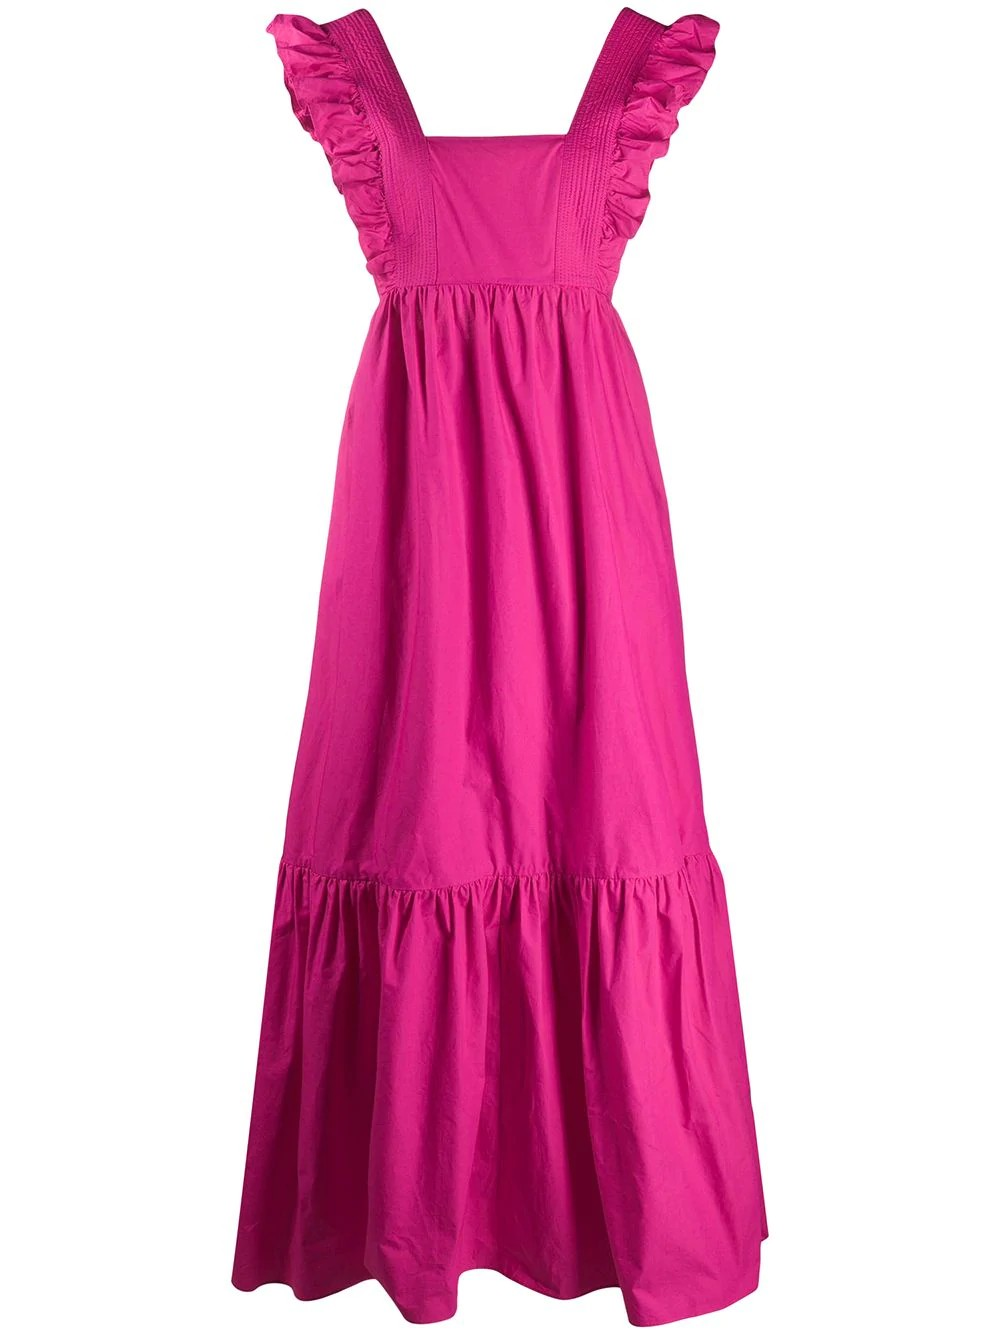 FUCHSIA COTTON POPLIN MAXI DRESS